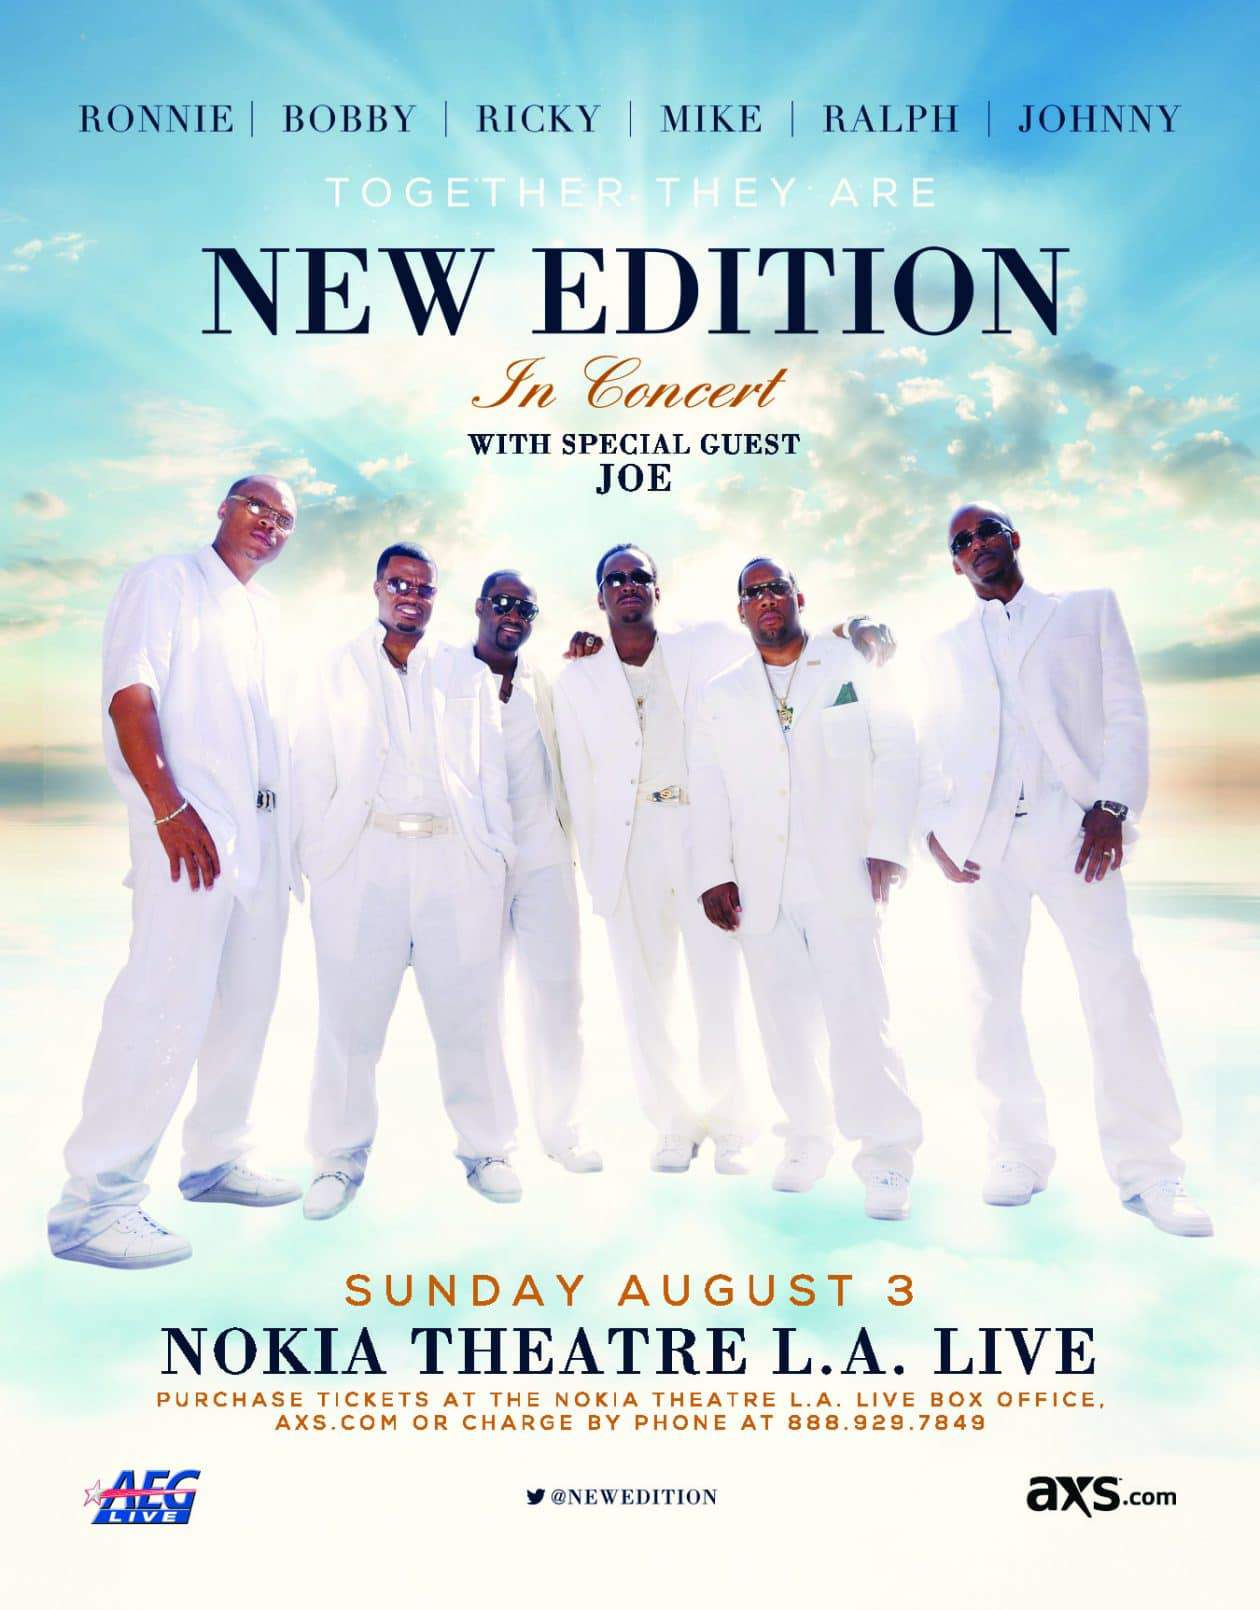 Los Angeles New Edition Concert with Special Guest Joe